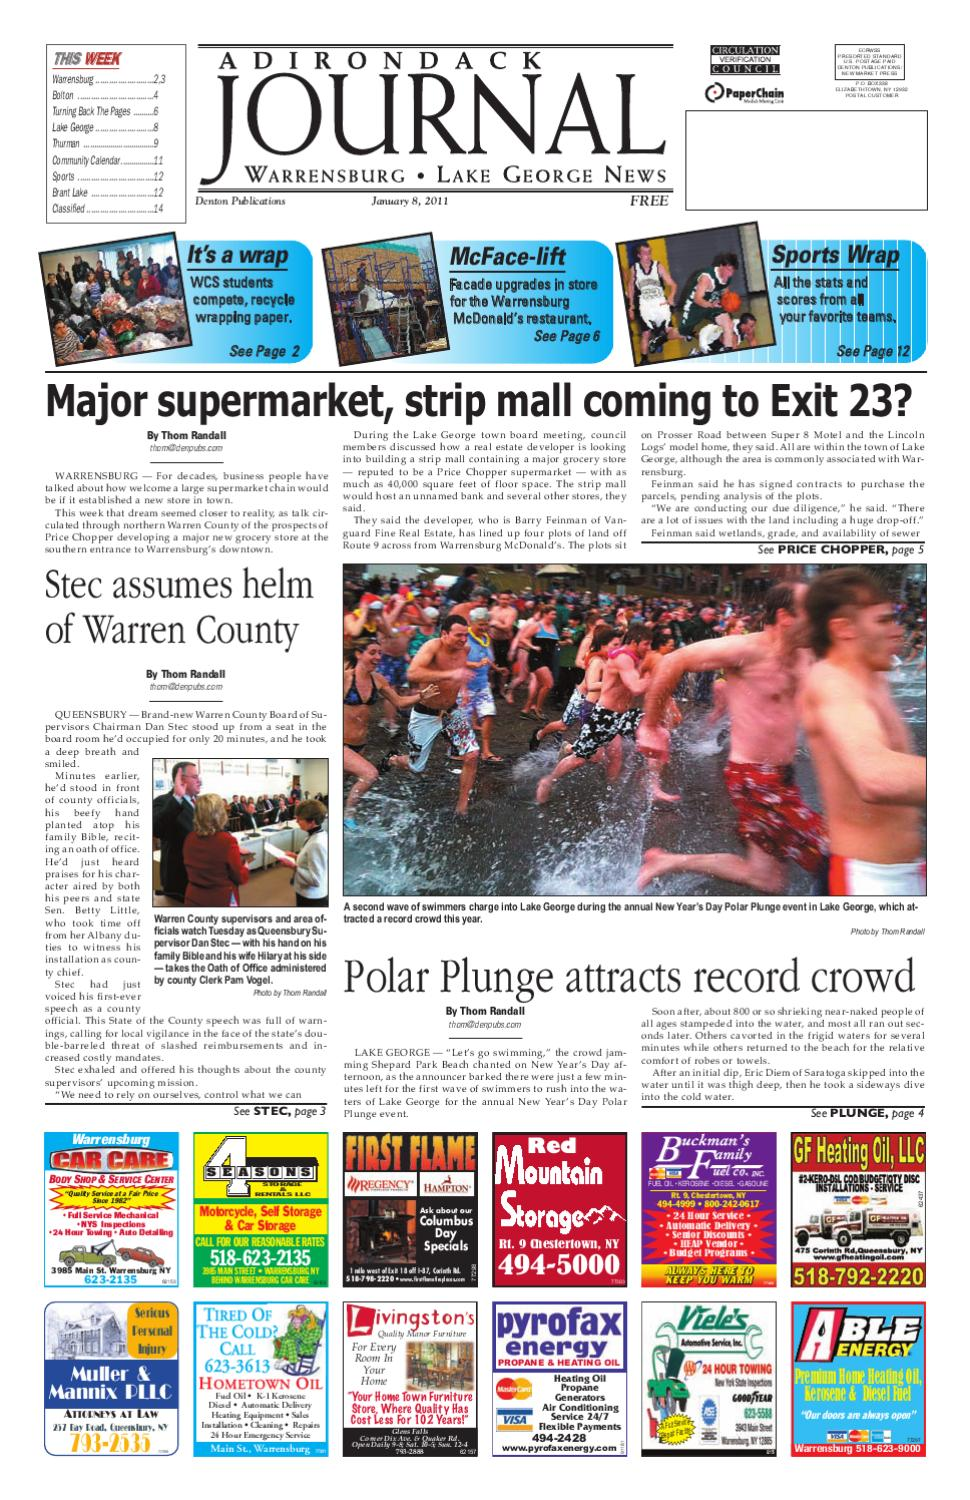 Record Turnout At 2008 Polar Plunge And >> Aj 01 08 2011 Edition By Sun Community News And Printing Issuu